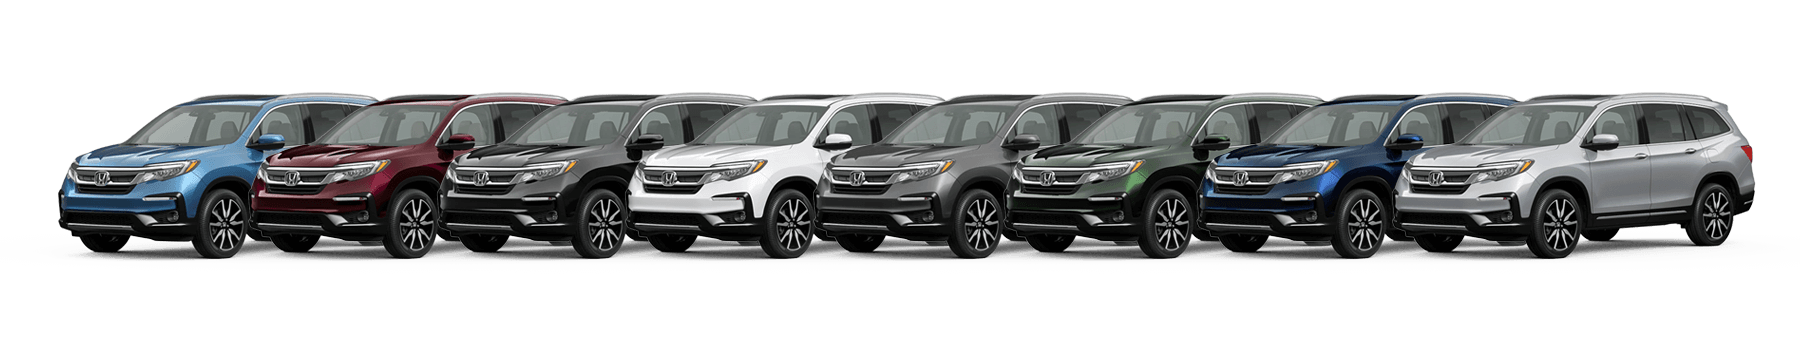 2021 Honda Pilot Color Options